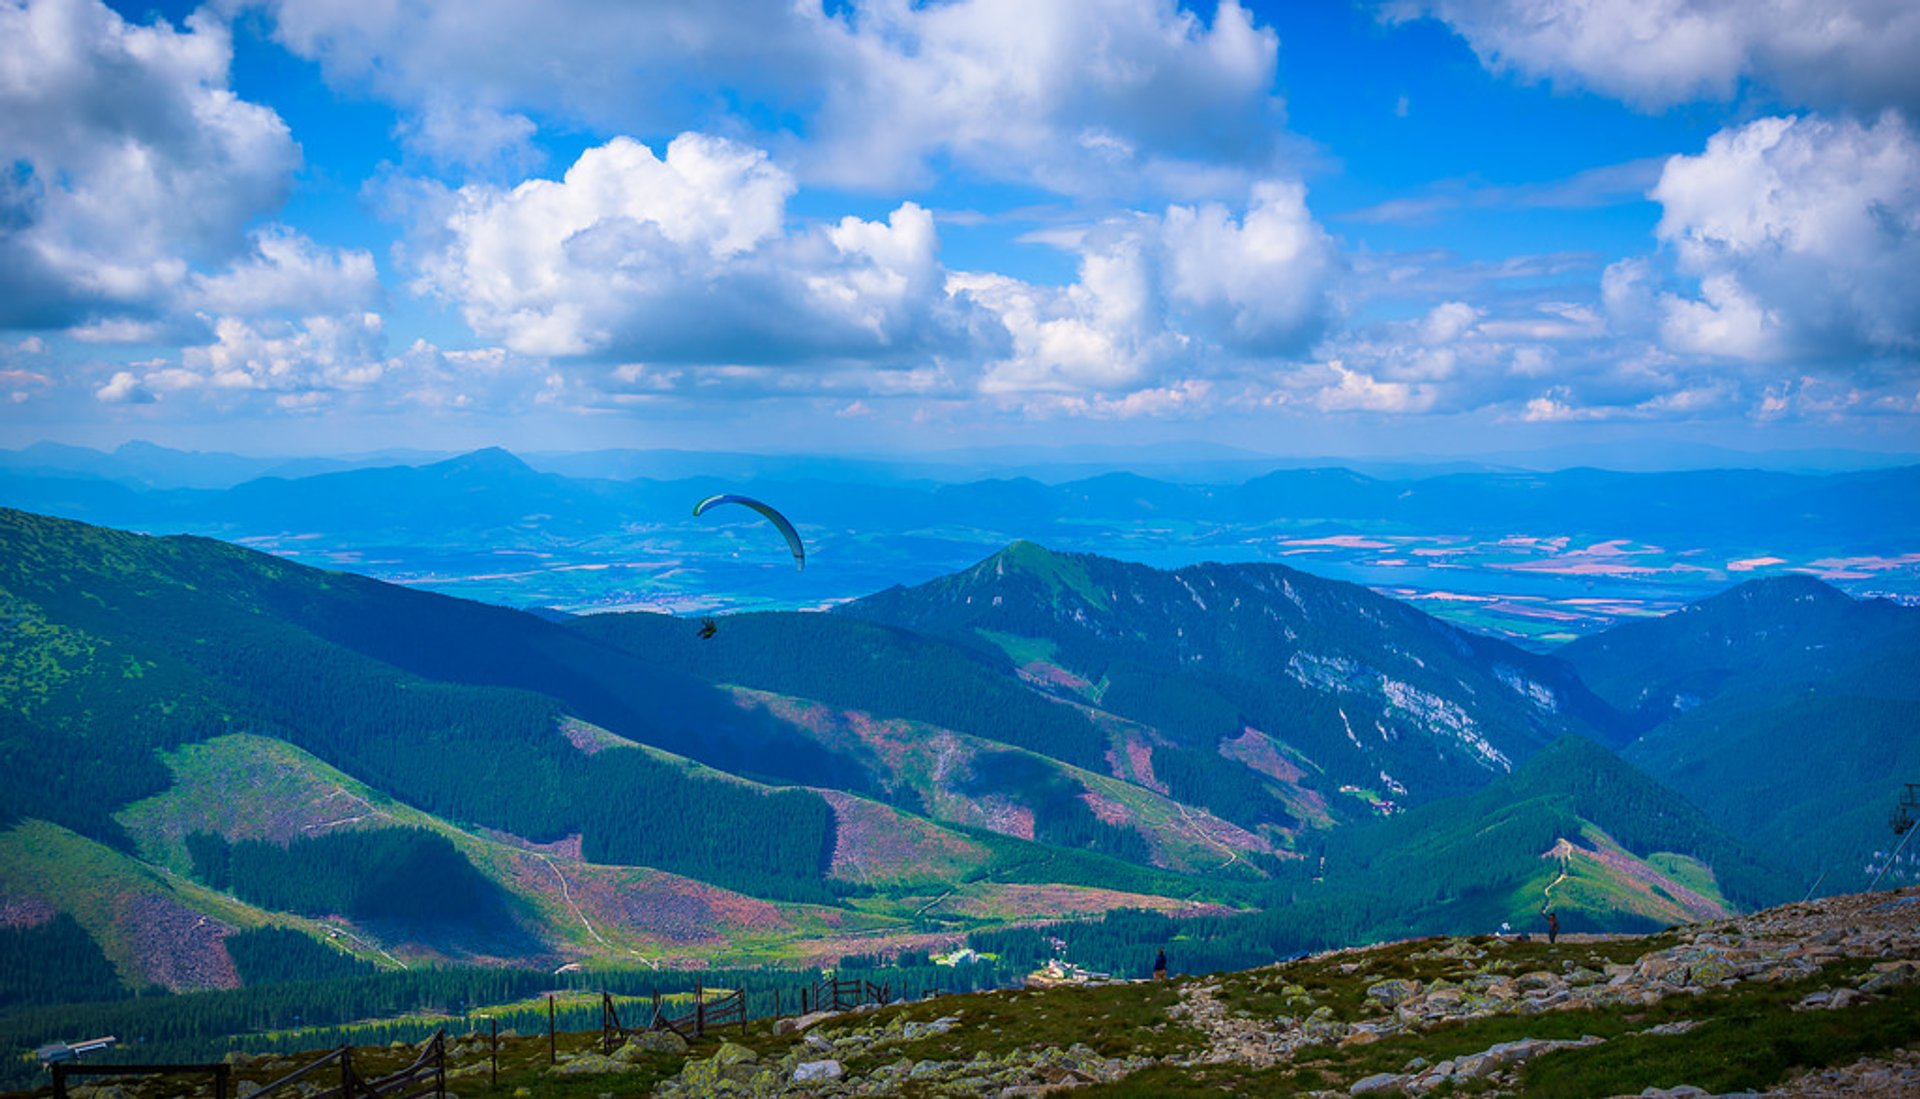 Paragliding in Chopok Mountains 2020